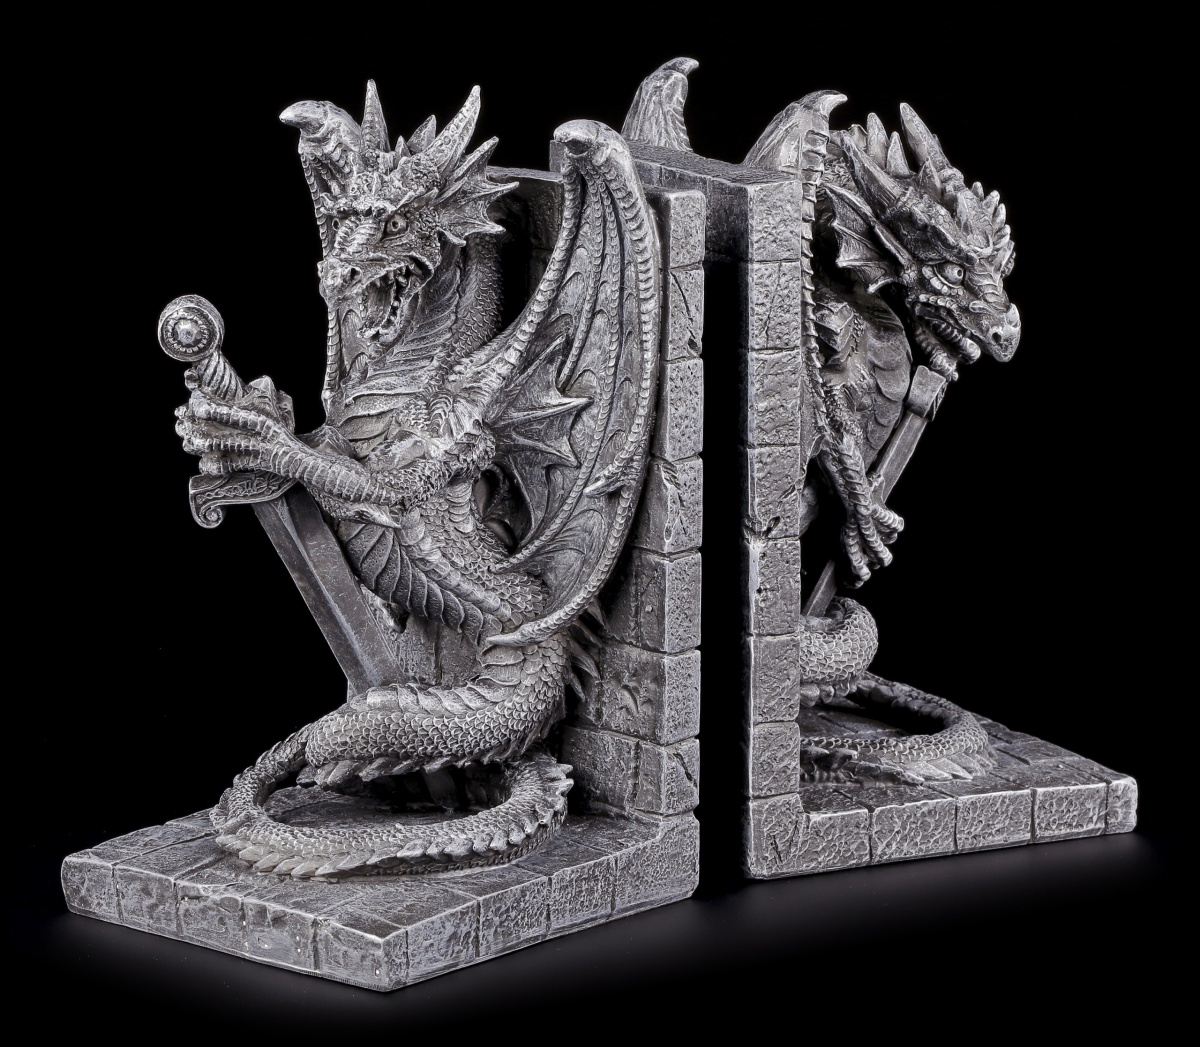 Dragon bookends set wisse poor figures fantasy gothic deco - Dragon bookends ...